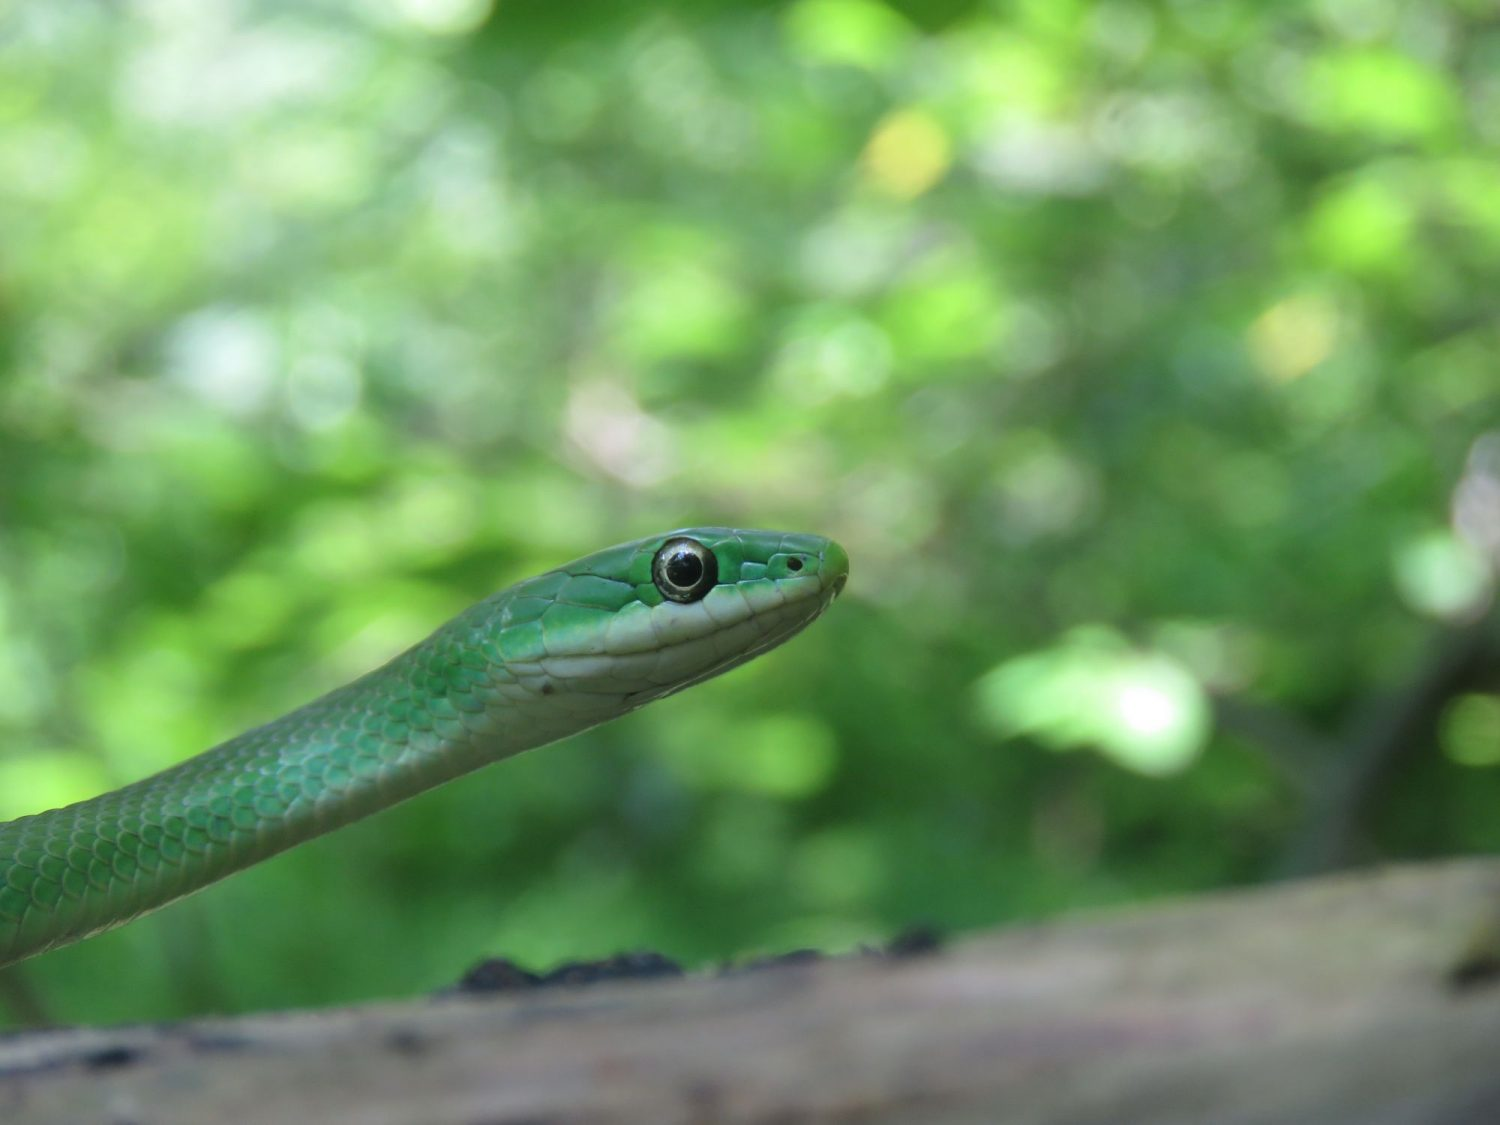 Rough green snake, closeup photo